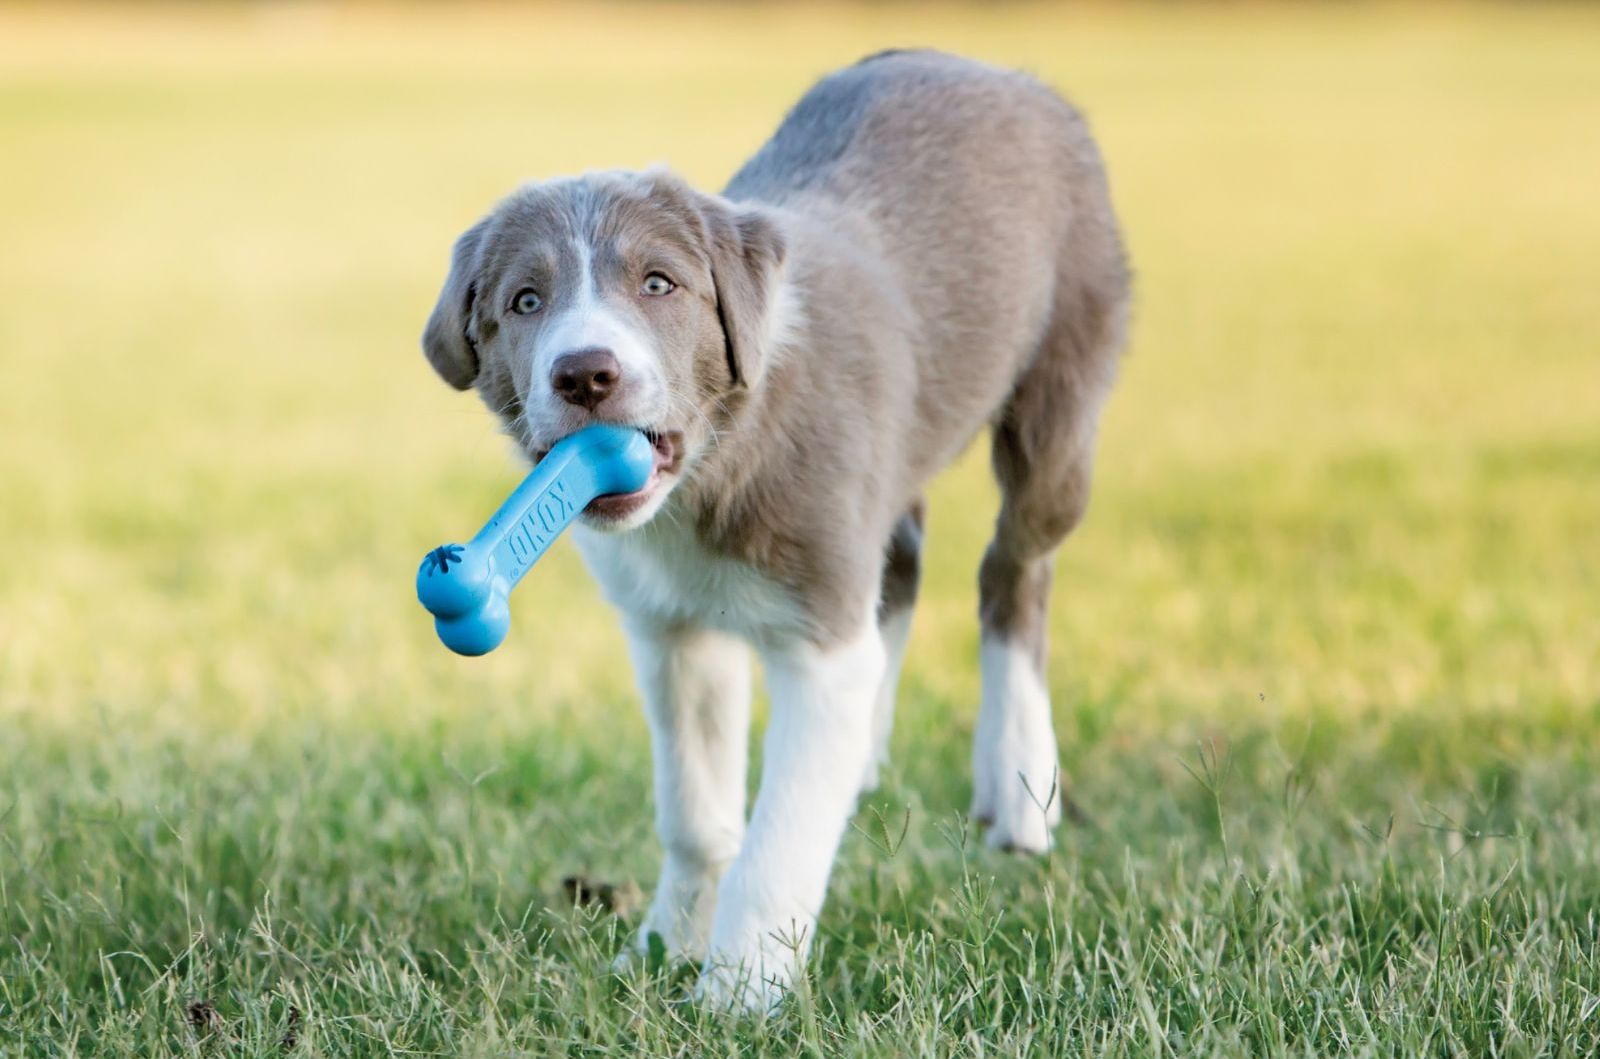 Puppy playing with a blue KONG Goodie Bone toy